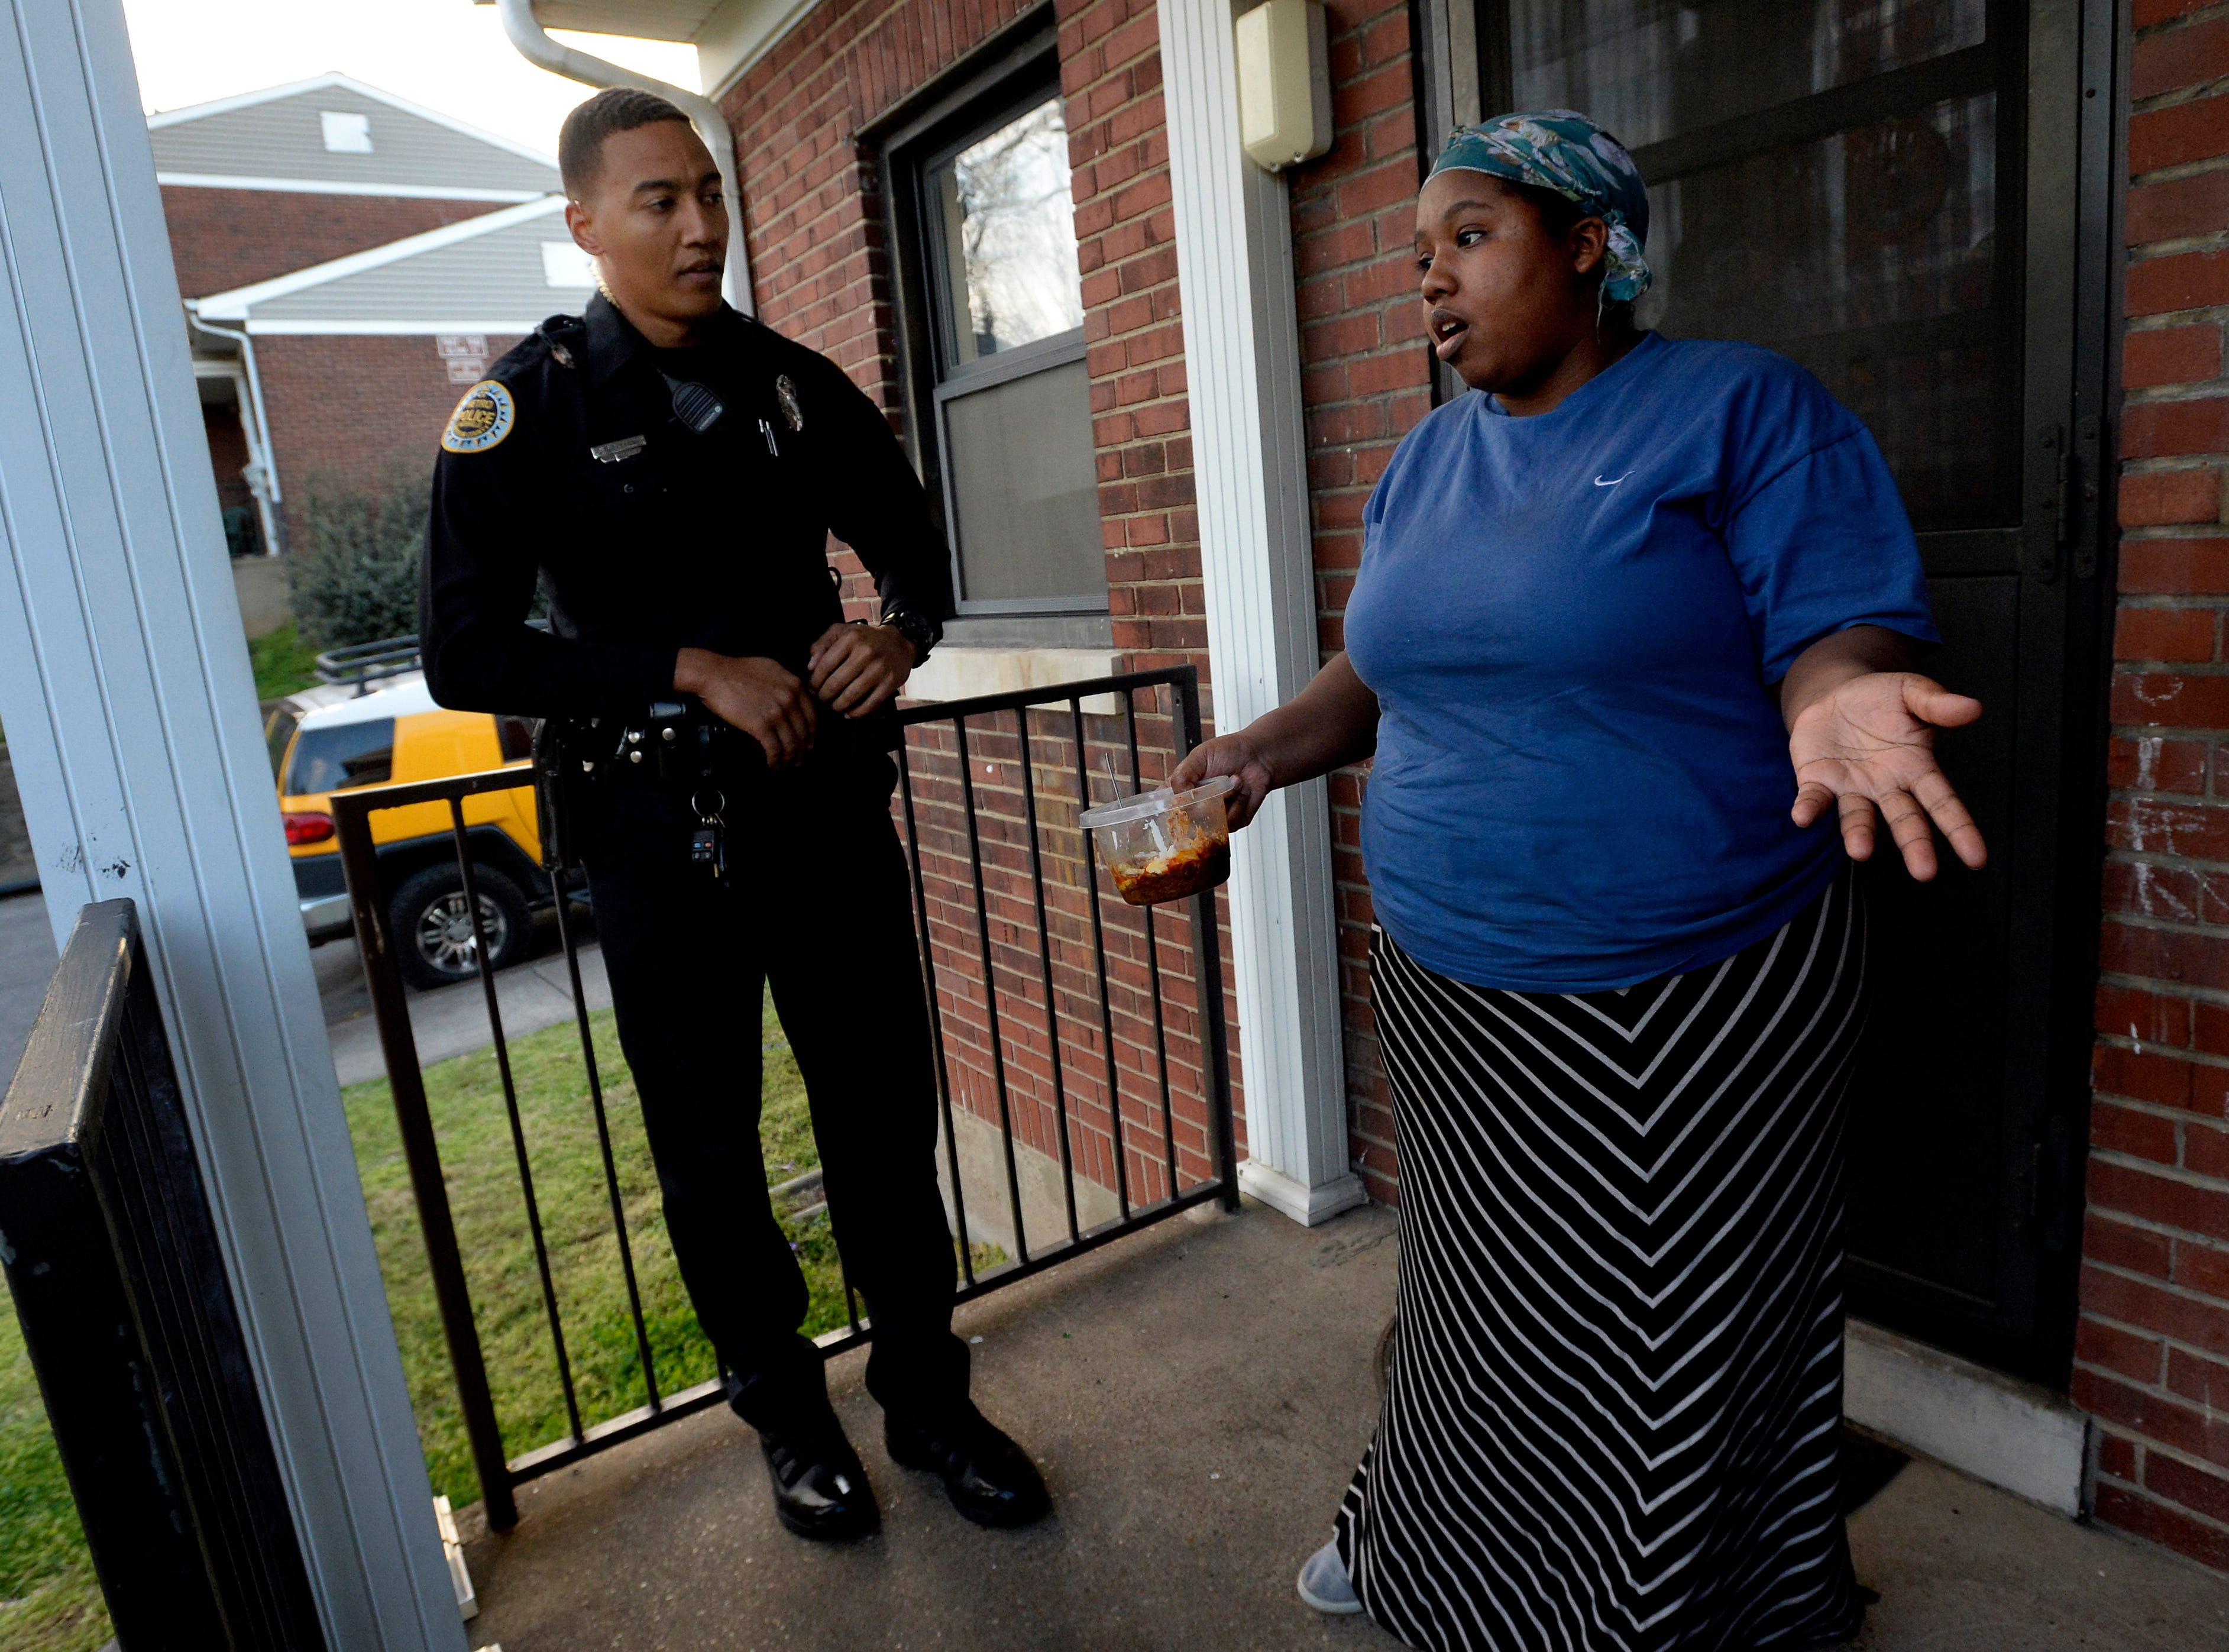 """Metro Nashville police officer Chris Dickerson listens to Lashandra Fuller, 30, as he spends time talking with her on Monday, April 1, 2019 in Nashville, Tenn. During the """"fixed post"""" time of his shift, Dickerson spends about 30 minutes in different areas of the north precinct visiting with people in the neighborhood."""